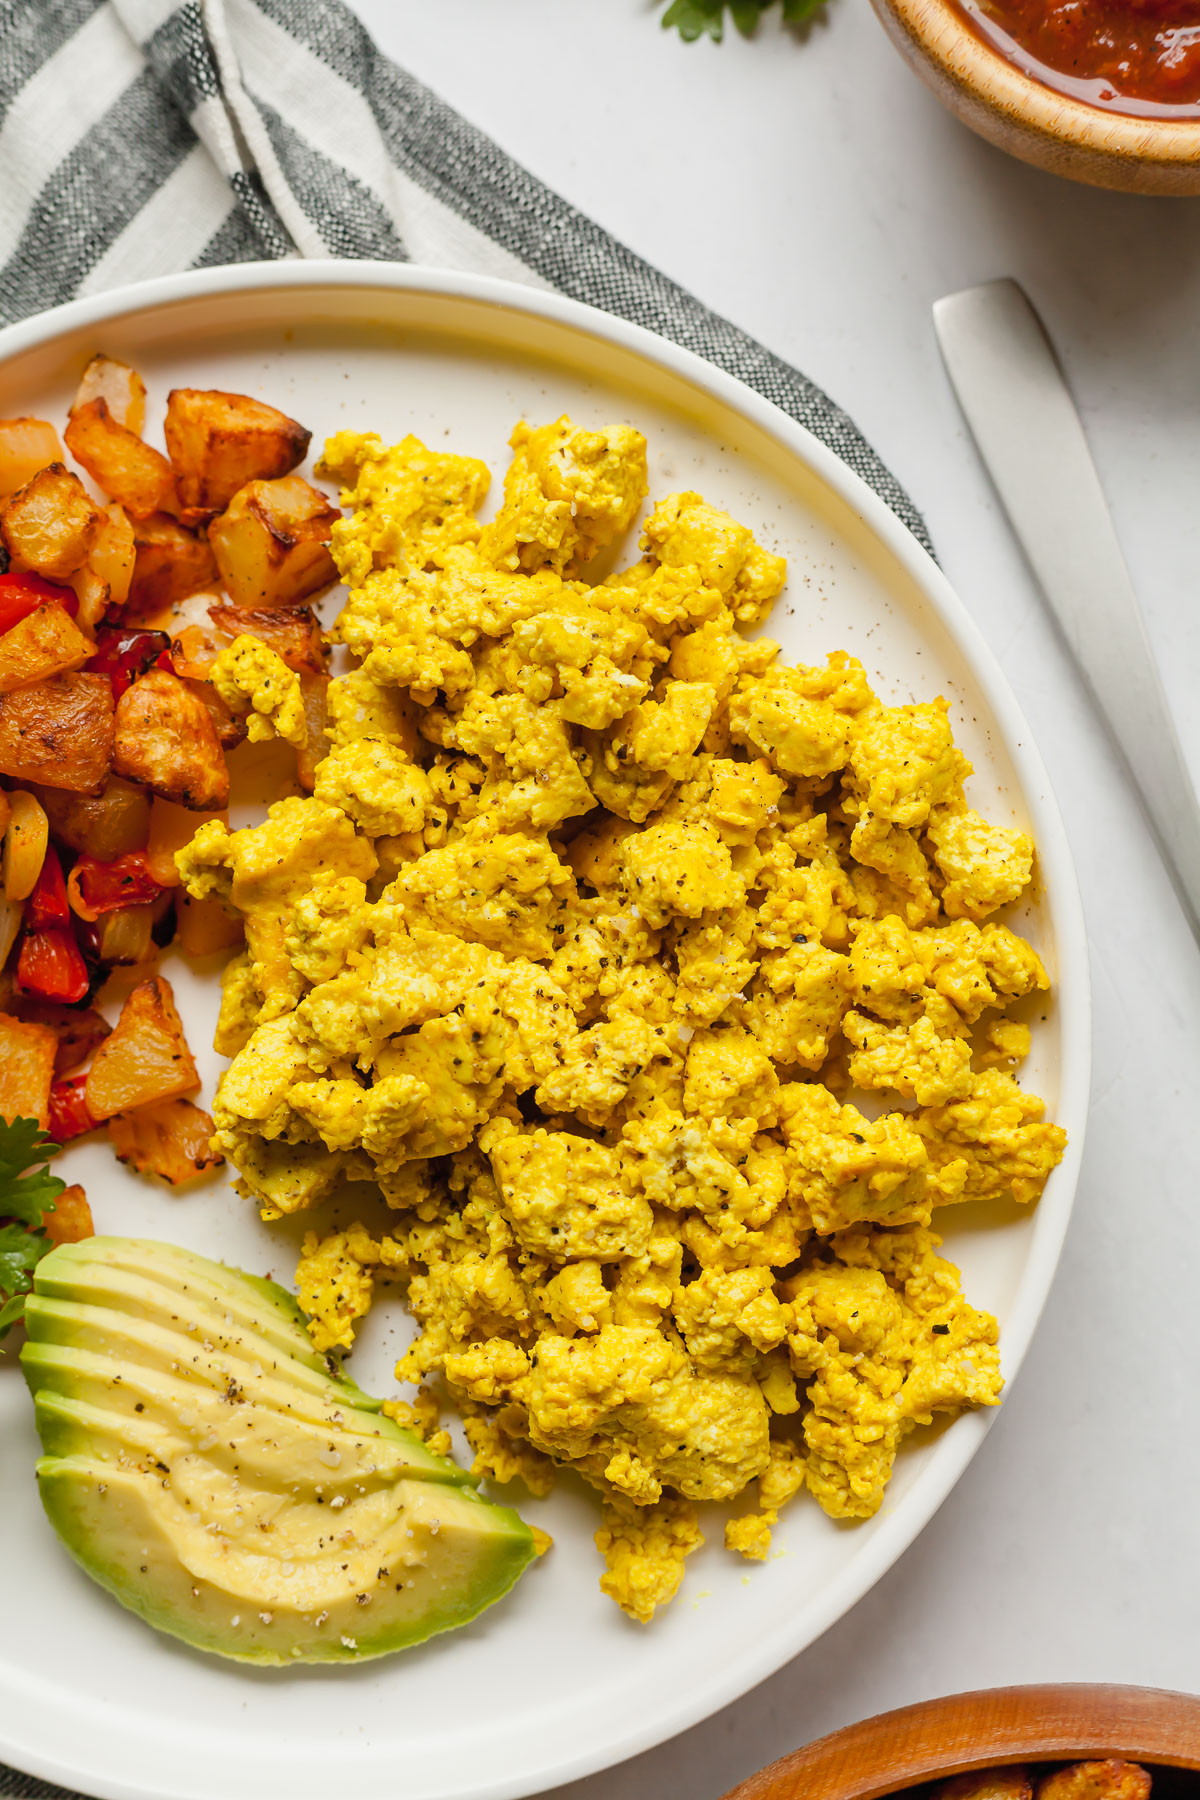 vegan tofu eggs on a white plate with home fries and avocado slices